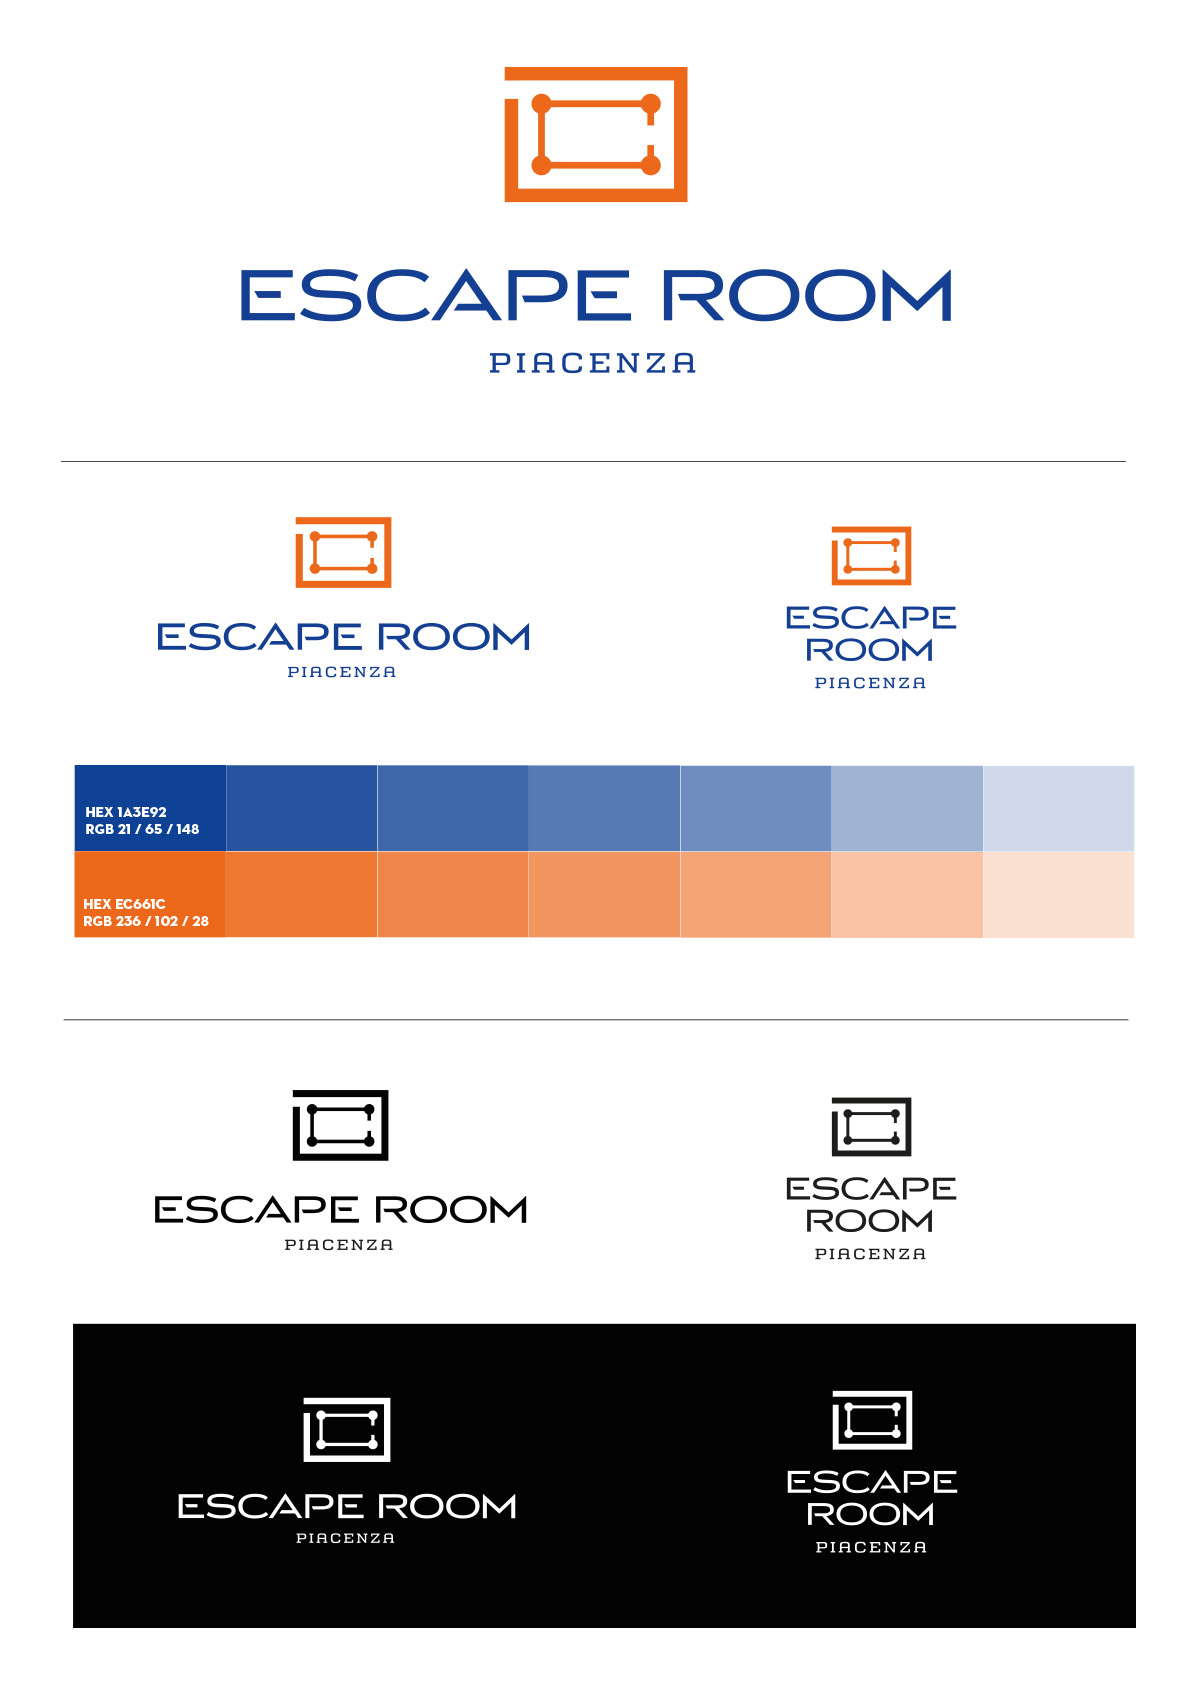 escape_room_logo